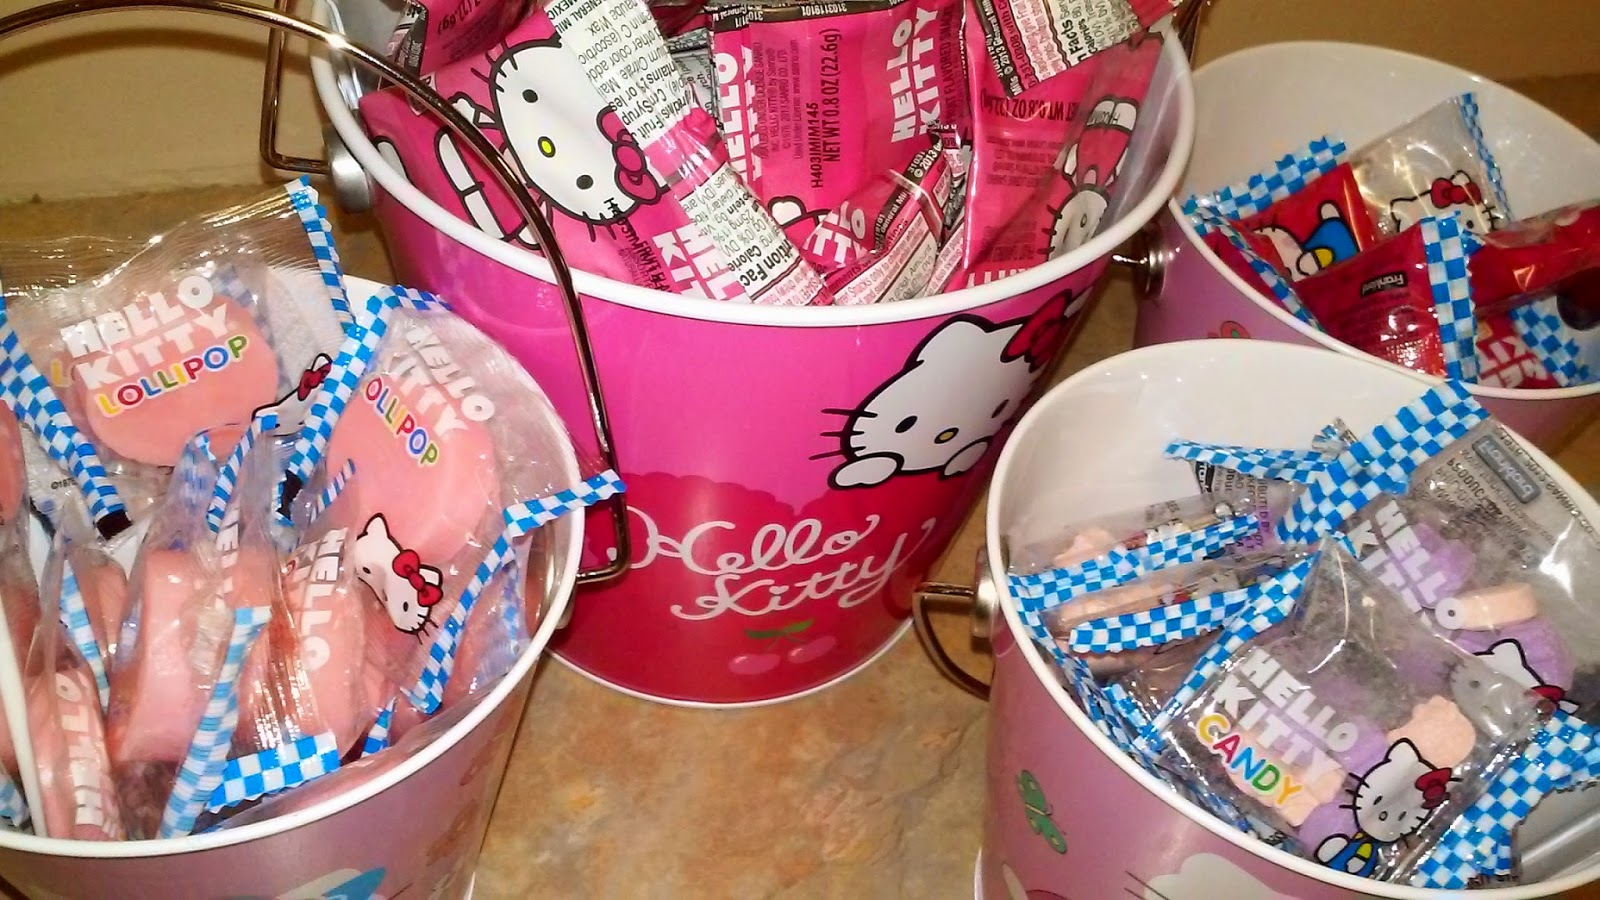 The Wagner Bulletin How To Throw a DIY Hello Kitty Party